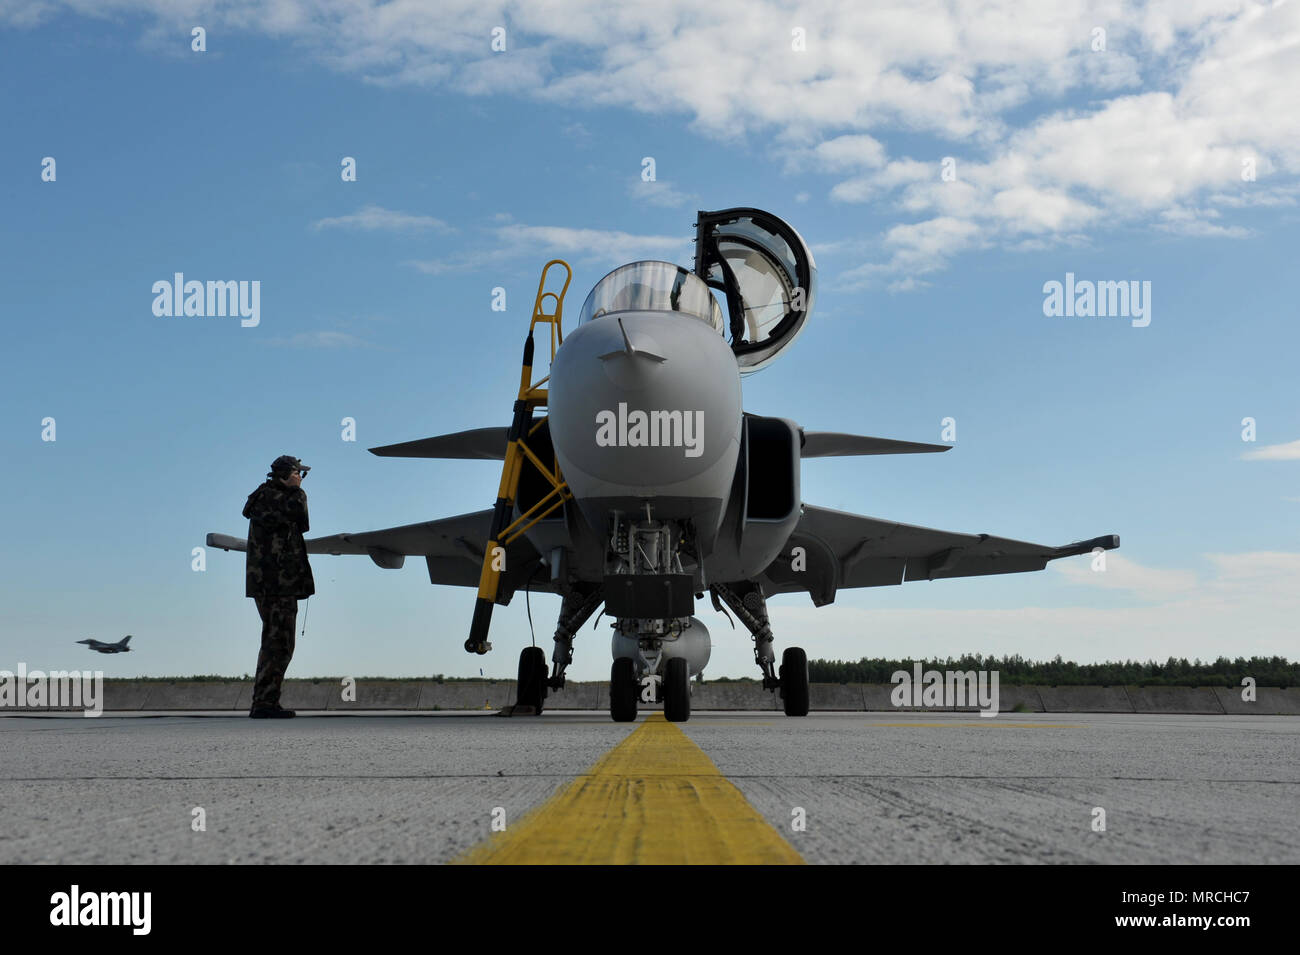 A Hungarian JAS 39 Gripen prepares to taxi as an F-16